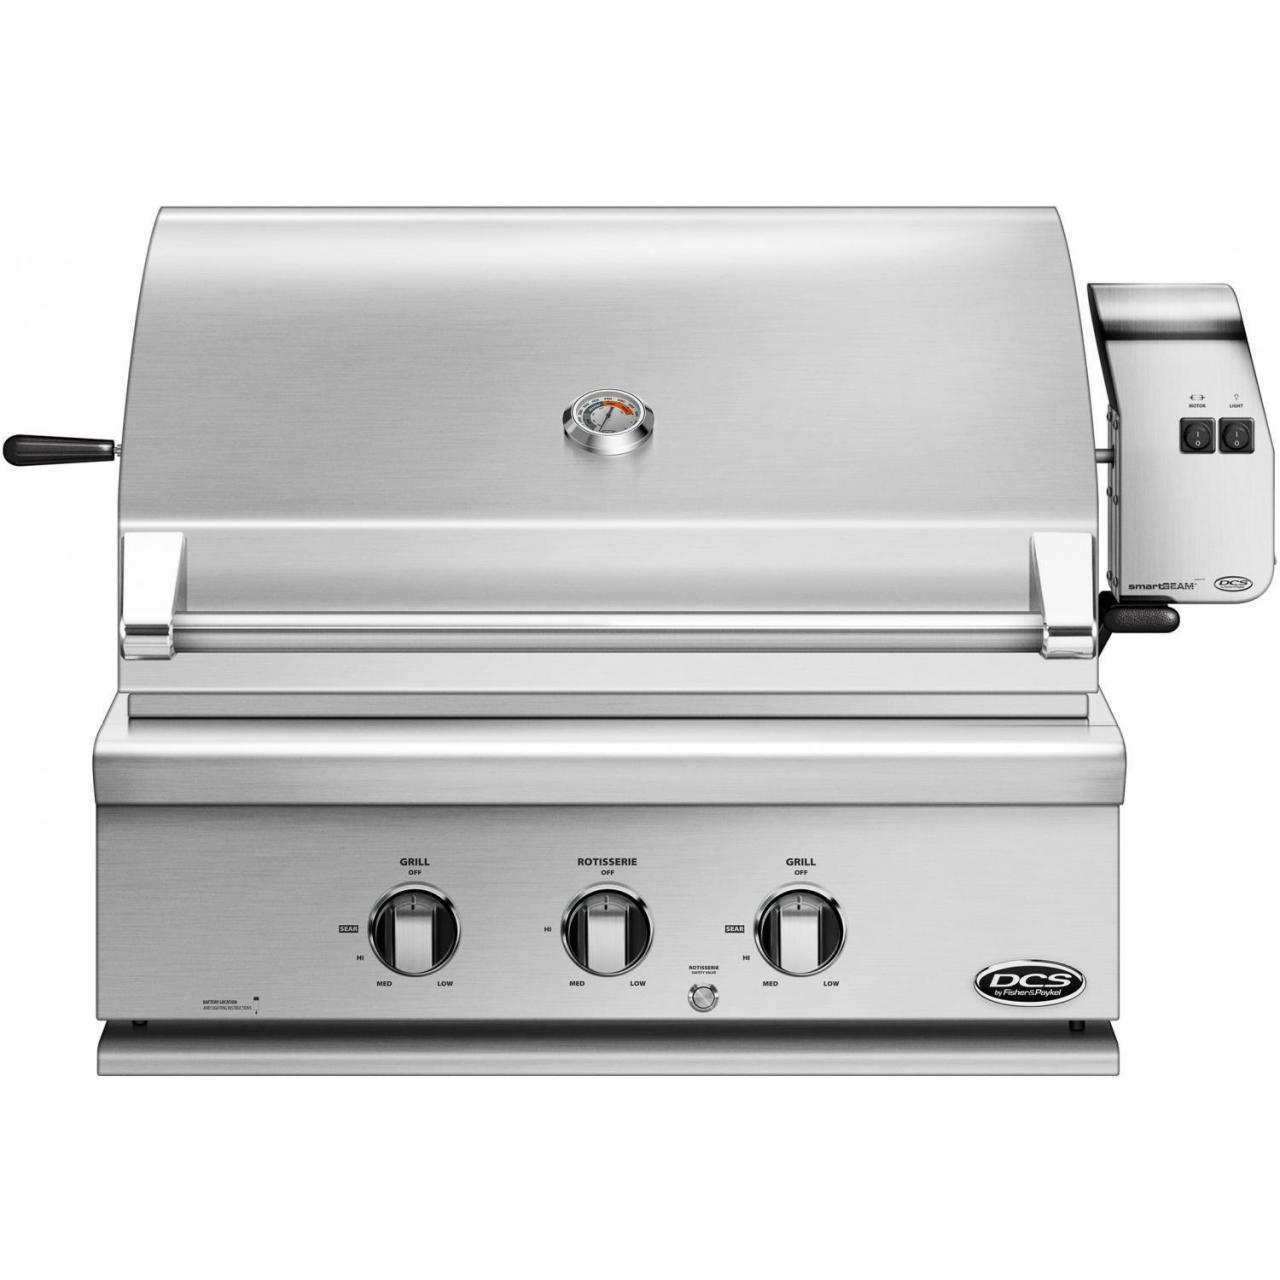 DCS Professional 30-Inch Built-In Natural Gas Grill With Rotisserie - BH1-30R-N